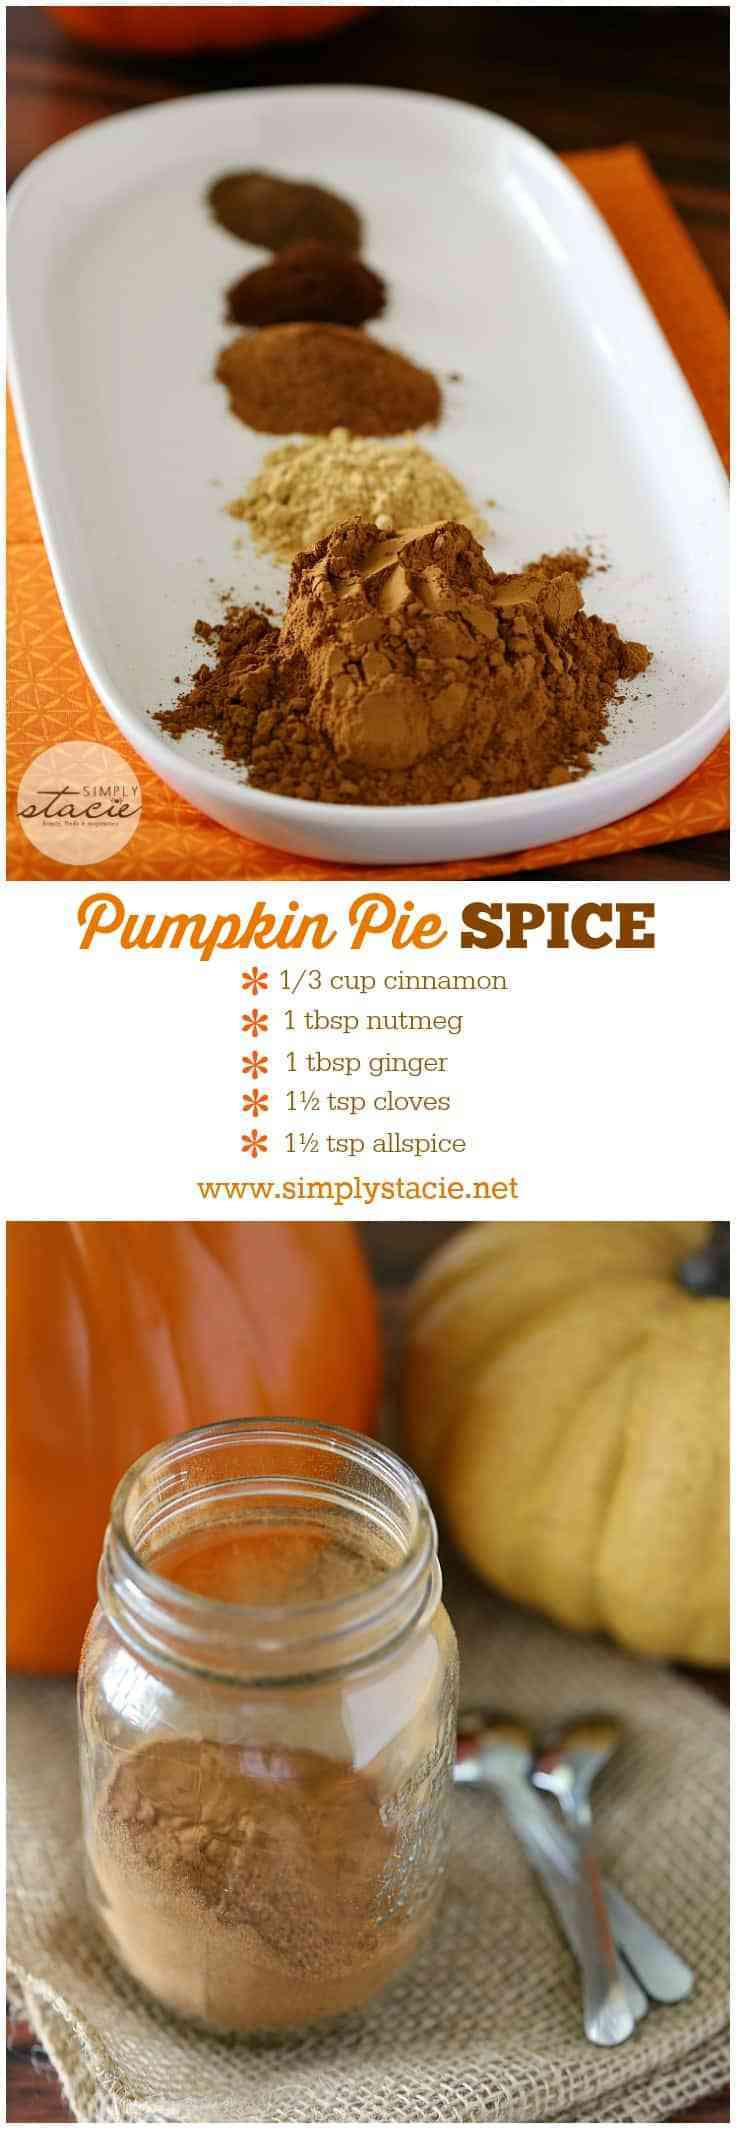 Best ideas about DIY Pumpkin Spice . Save or Pin Homemade Pumpkin Pie Spice Simply Stacie Now.